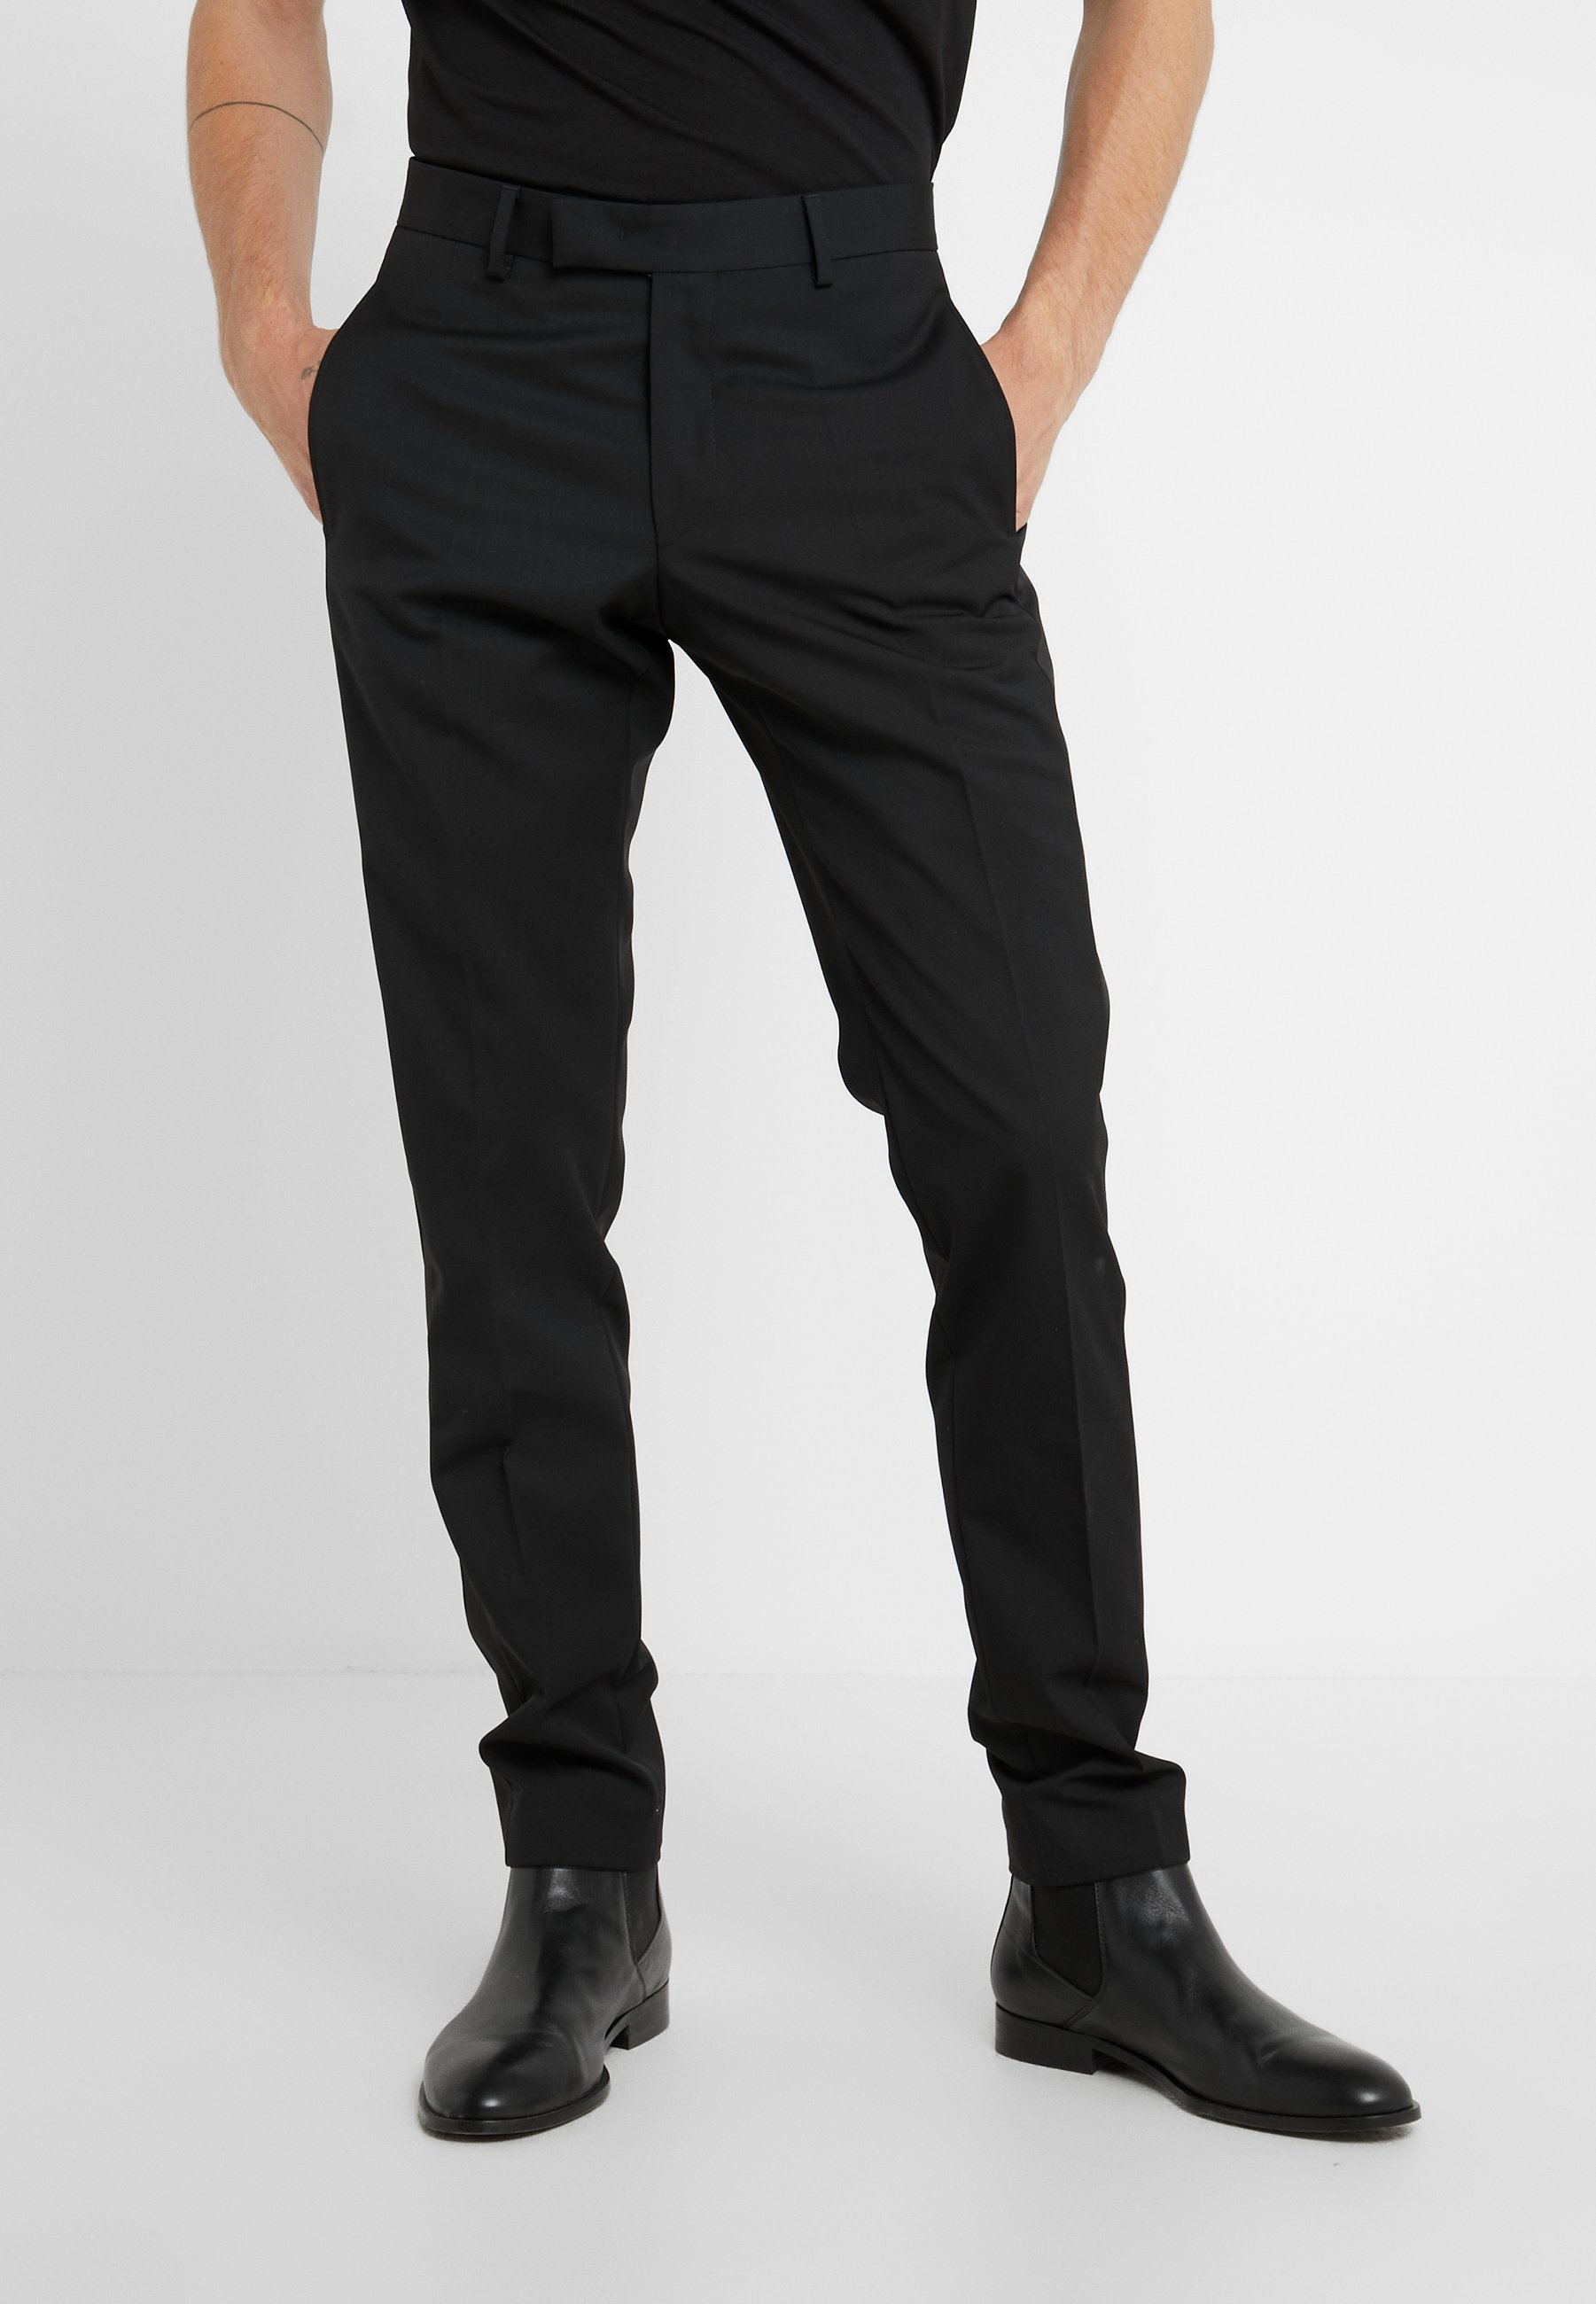 Karl Classique Black Lagerfeld MidnightPantalon Trousers 6ygbfY7